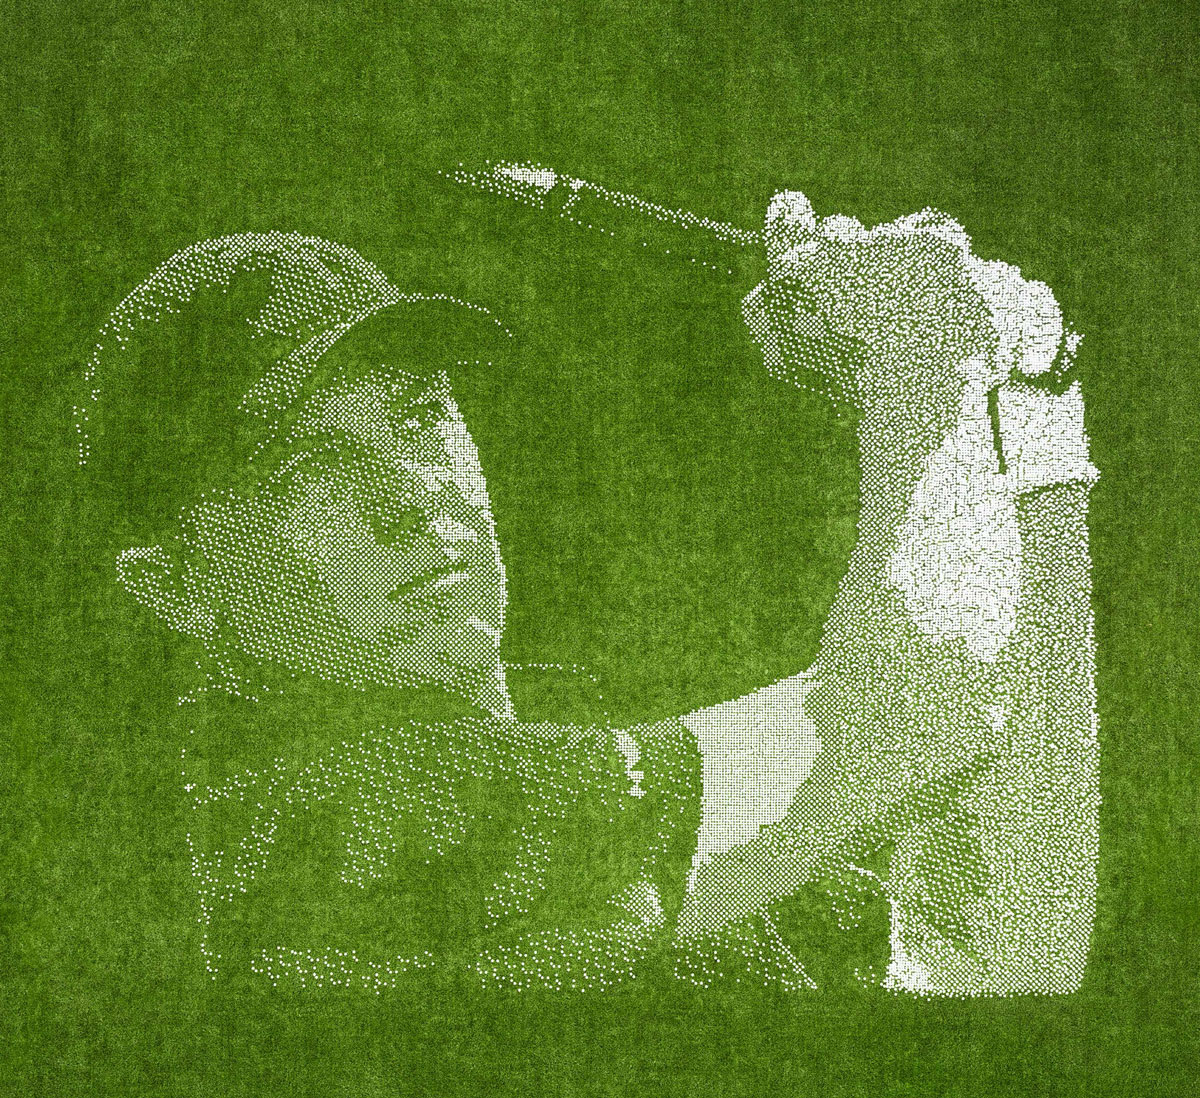 Last fall, AT&T put together a huge outdoor mural depicting Spieth near its headquarters in downtown Dallas. The mural was constructed with more than 24,000 golf balls.